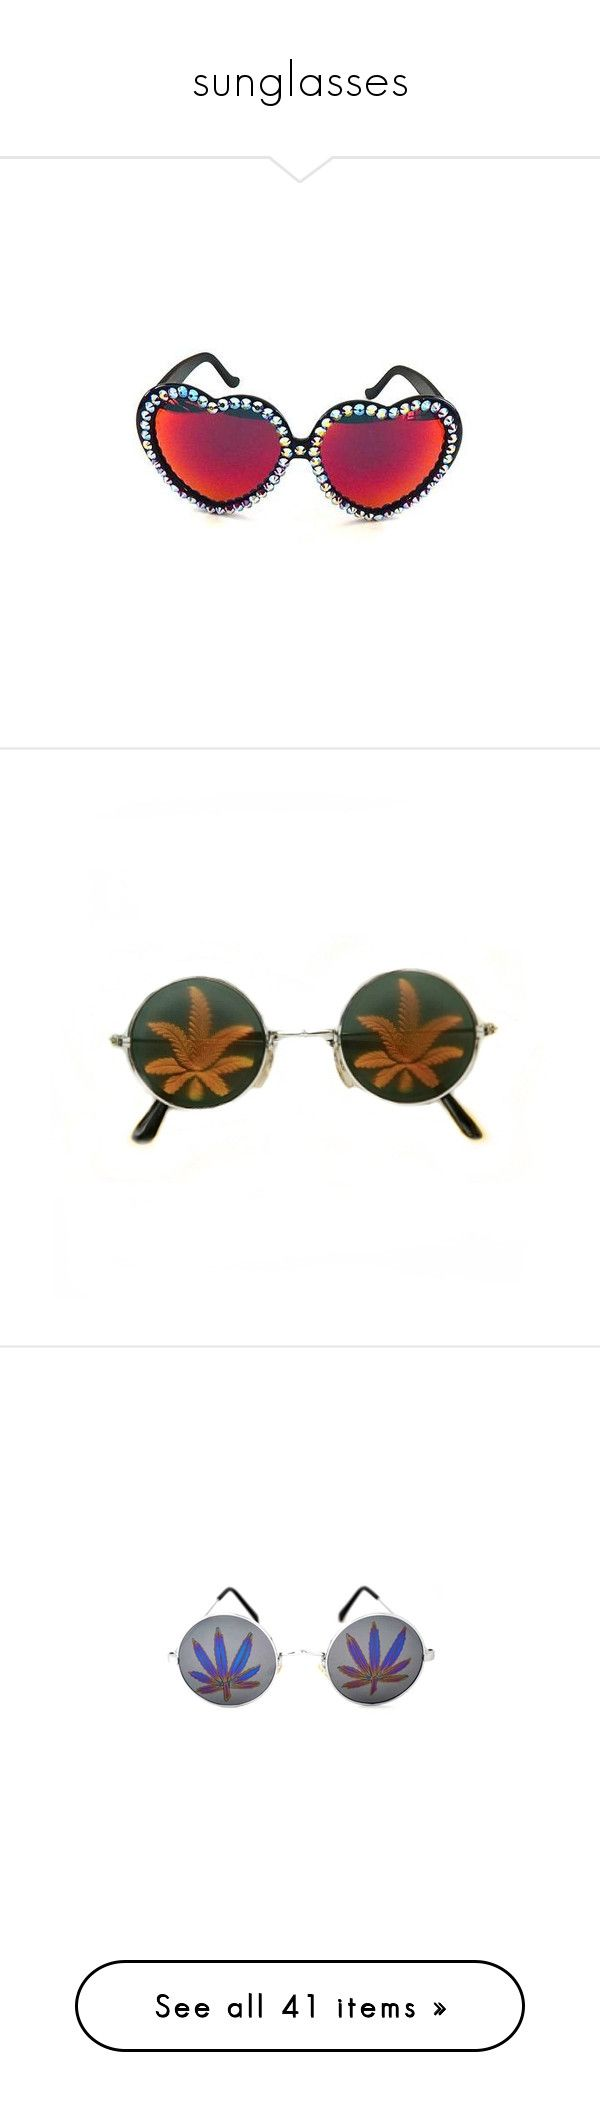 sunglasses by s8tan on Polyvore featuring polyvore women's fashion accessories eyewear sunglasses glasses gasoline glamour sunglasses mirror lens sunglasses gasoline glamour mirrored lens sunglasses acrylic glasses fillers hologram sunglasses hologram glasses acc clothing peace sunglasses hippy sunglasses hippie sunglasses peace sign sunglasses hippy glasses alien dark lens sunglasses white sunglasses white glasses accessories glasses karen walker eyewear karen walker sunglasses karen walker…